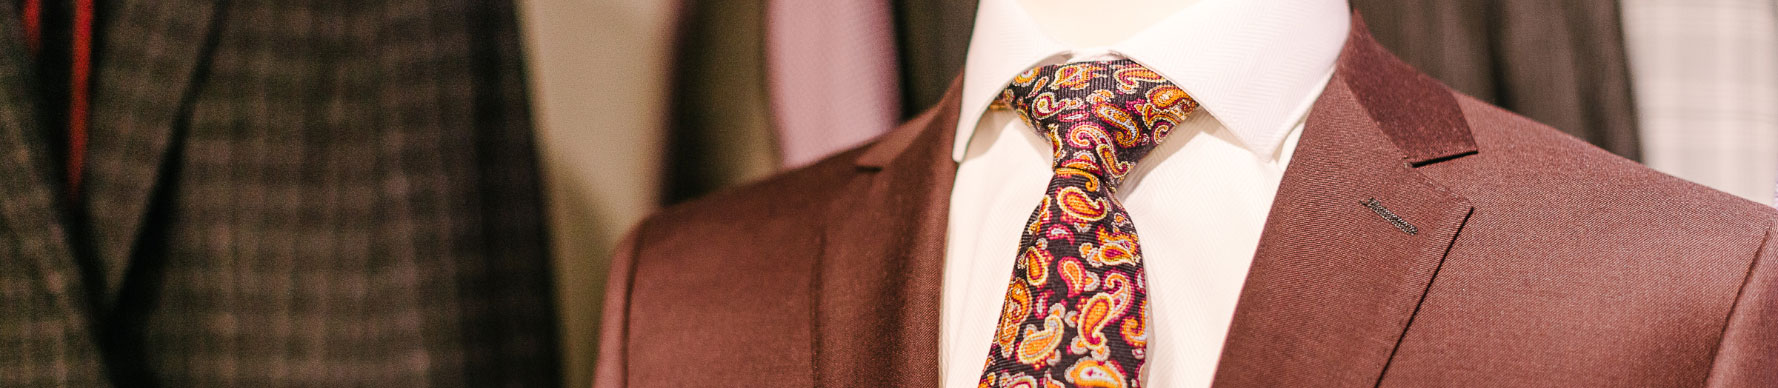 A display of a burgundy jacket over a white dress shirt. There is a colorful tie and white pocket square